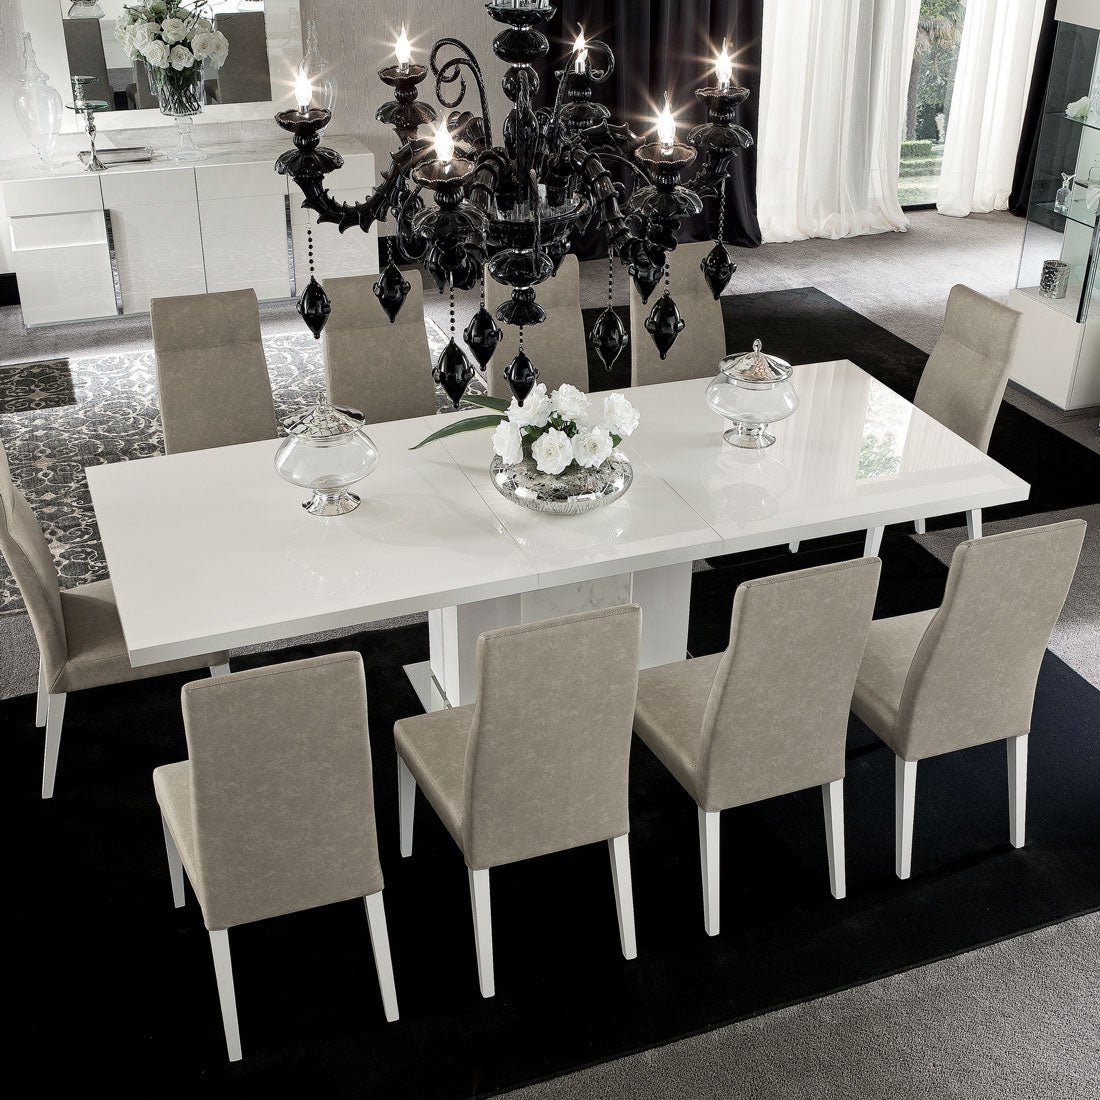 ALF Canova Dining Room Collection - Isingtec